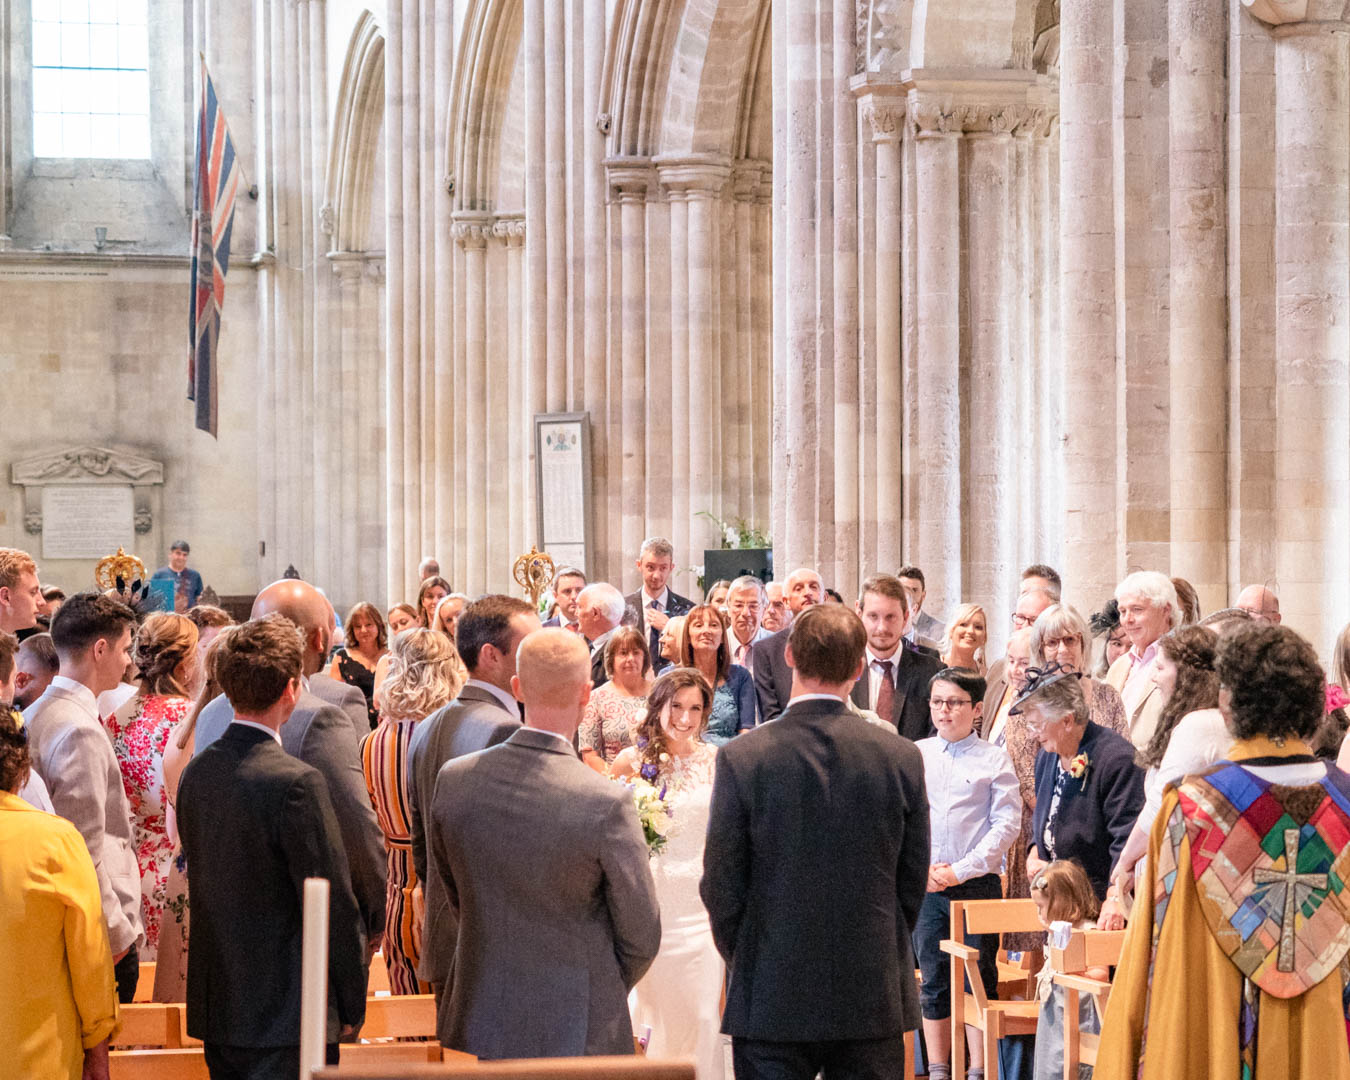 A bride greets her bridegroom at their wedding in Romsey Abbey